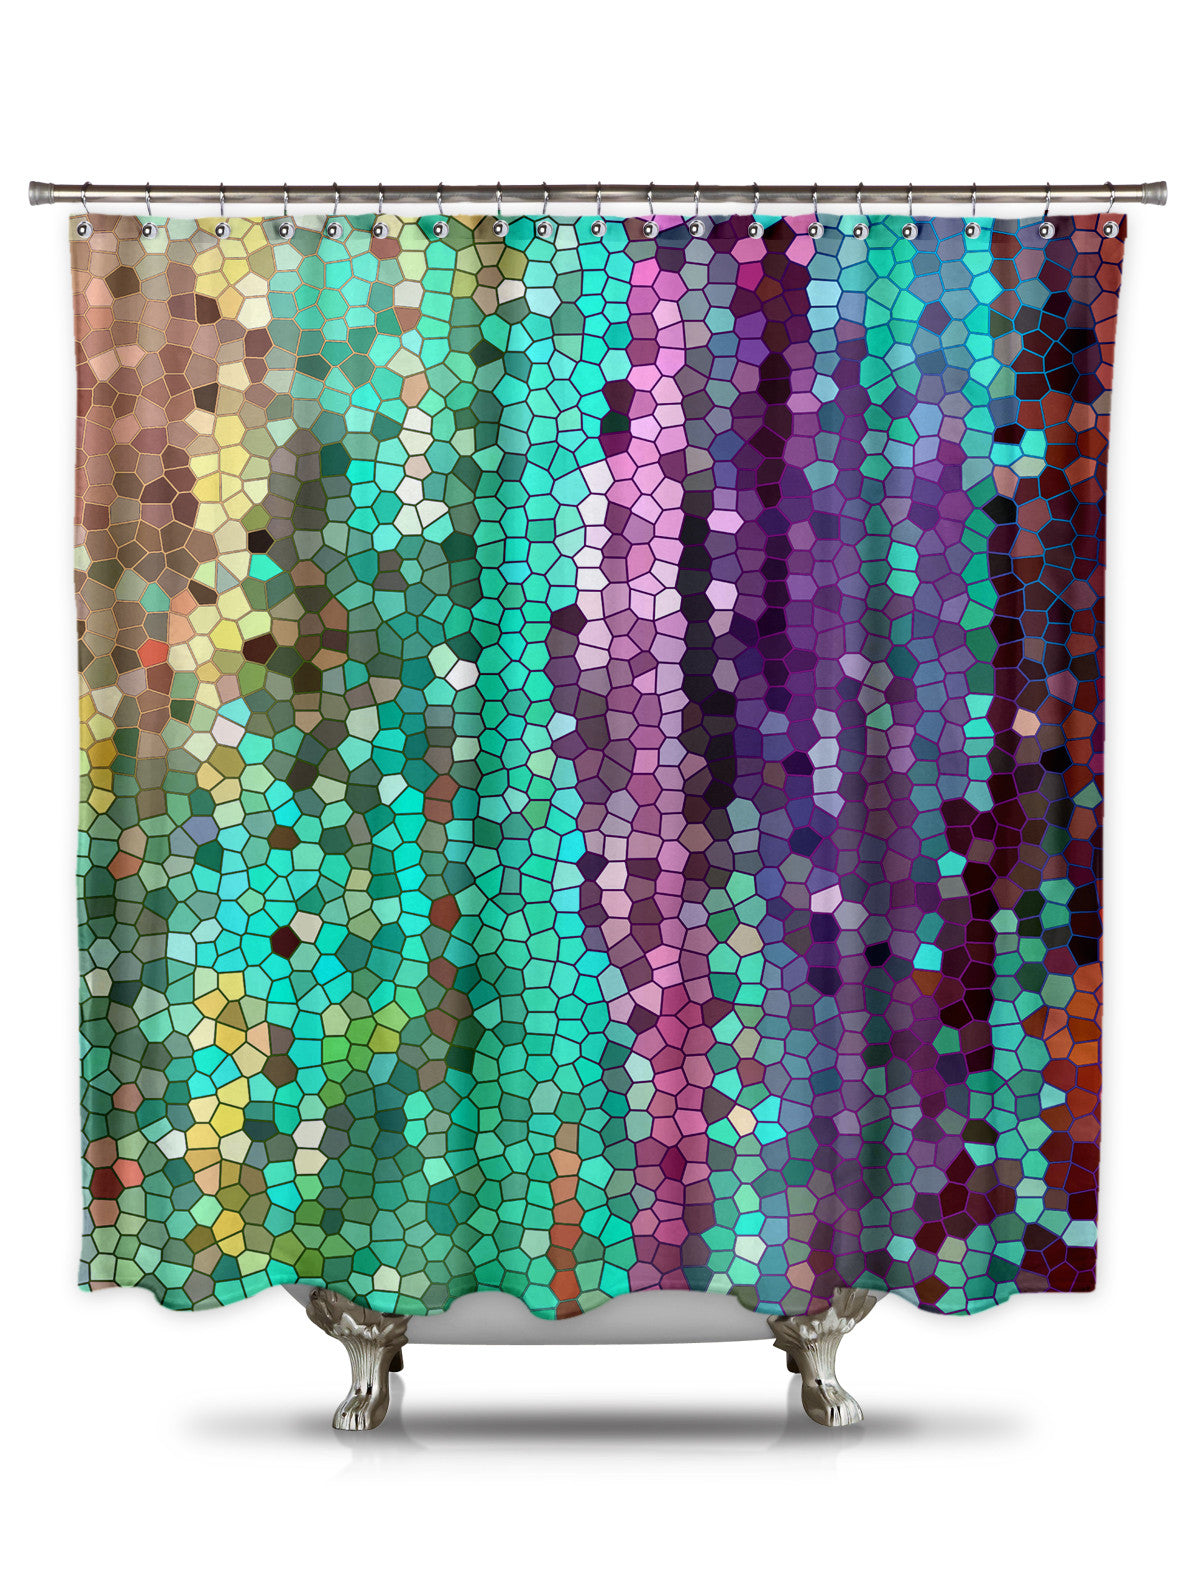 Morning Mosaic By Catherine Holcombe Fabric Shower Curtain Showercurtainhq